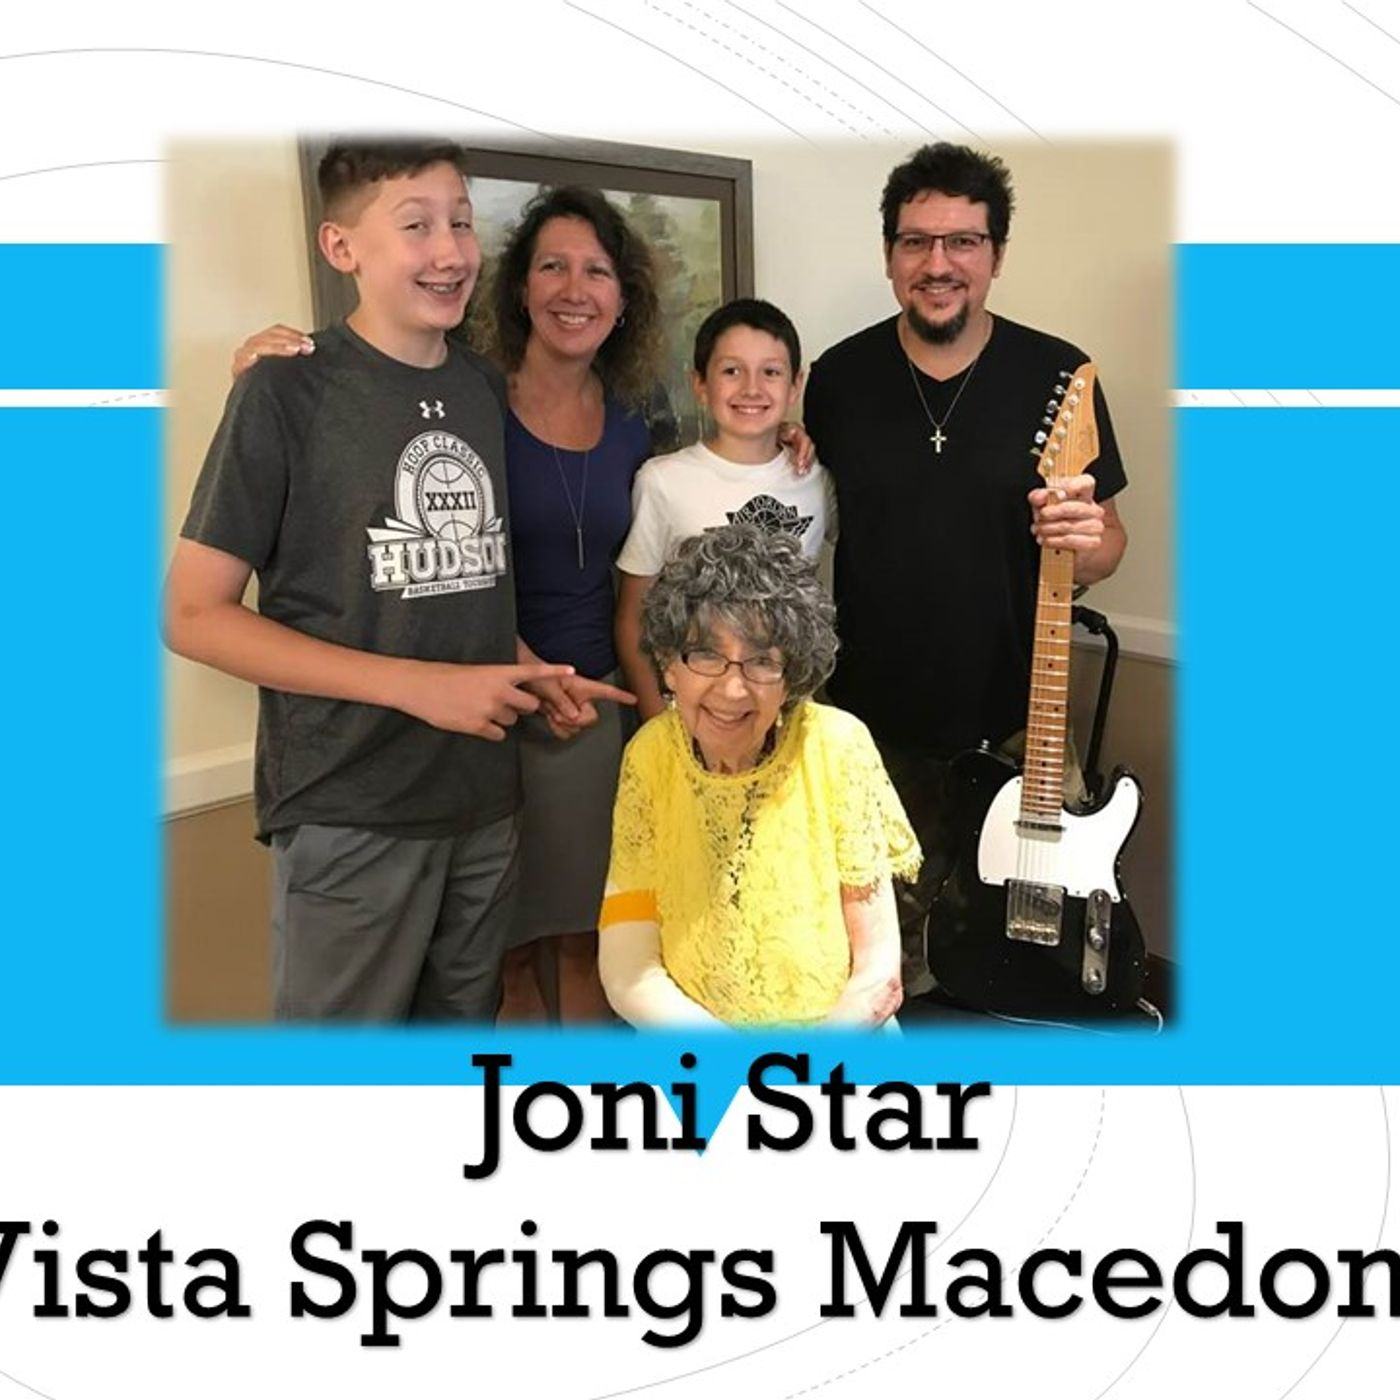 vista-springs-macedonia-with-joni-and-frankie-star-7_10_18